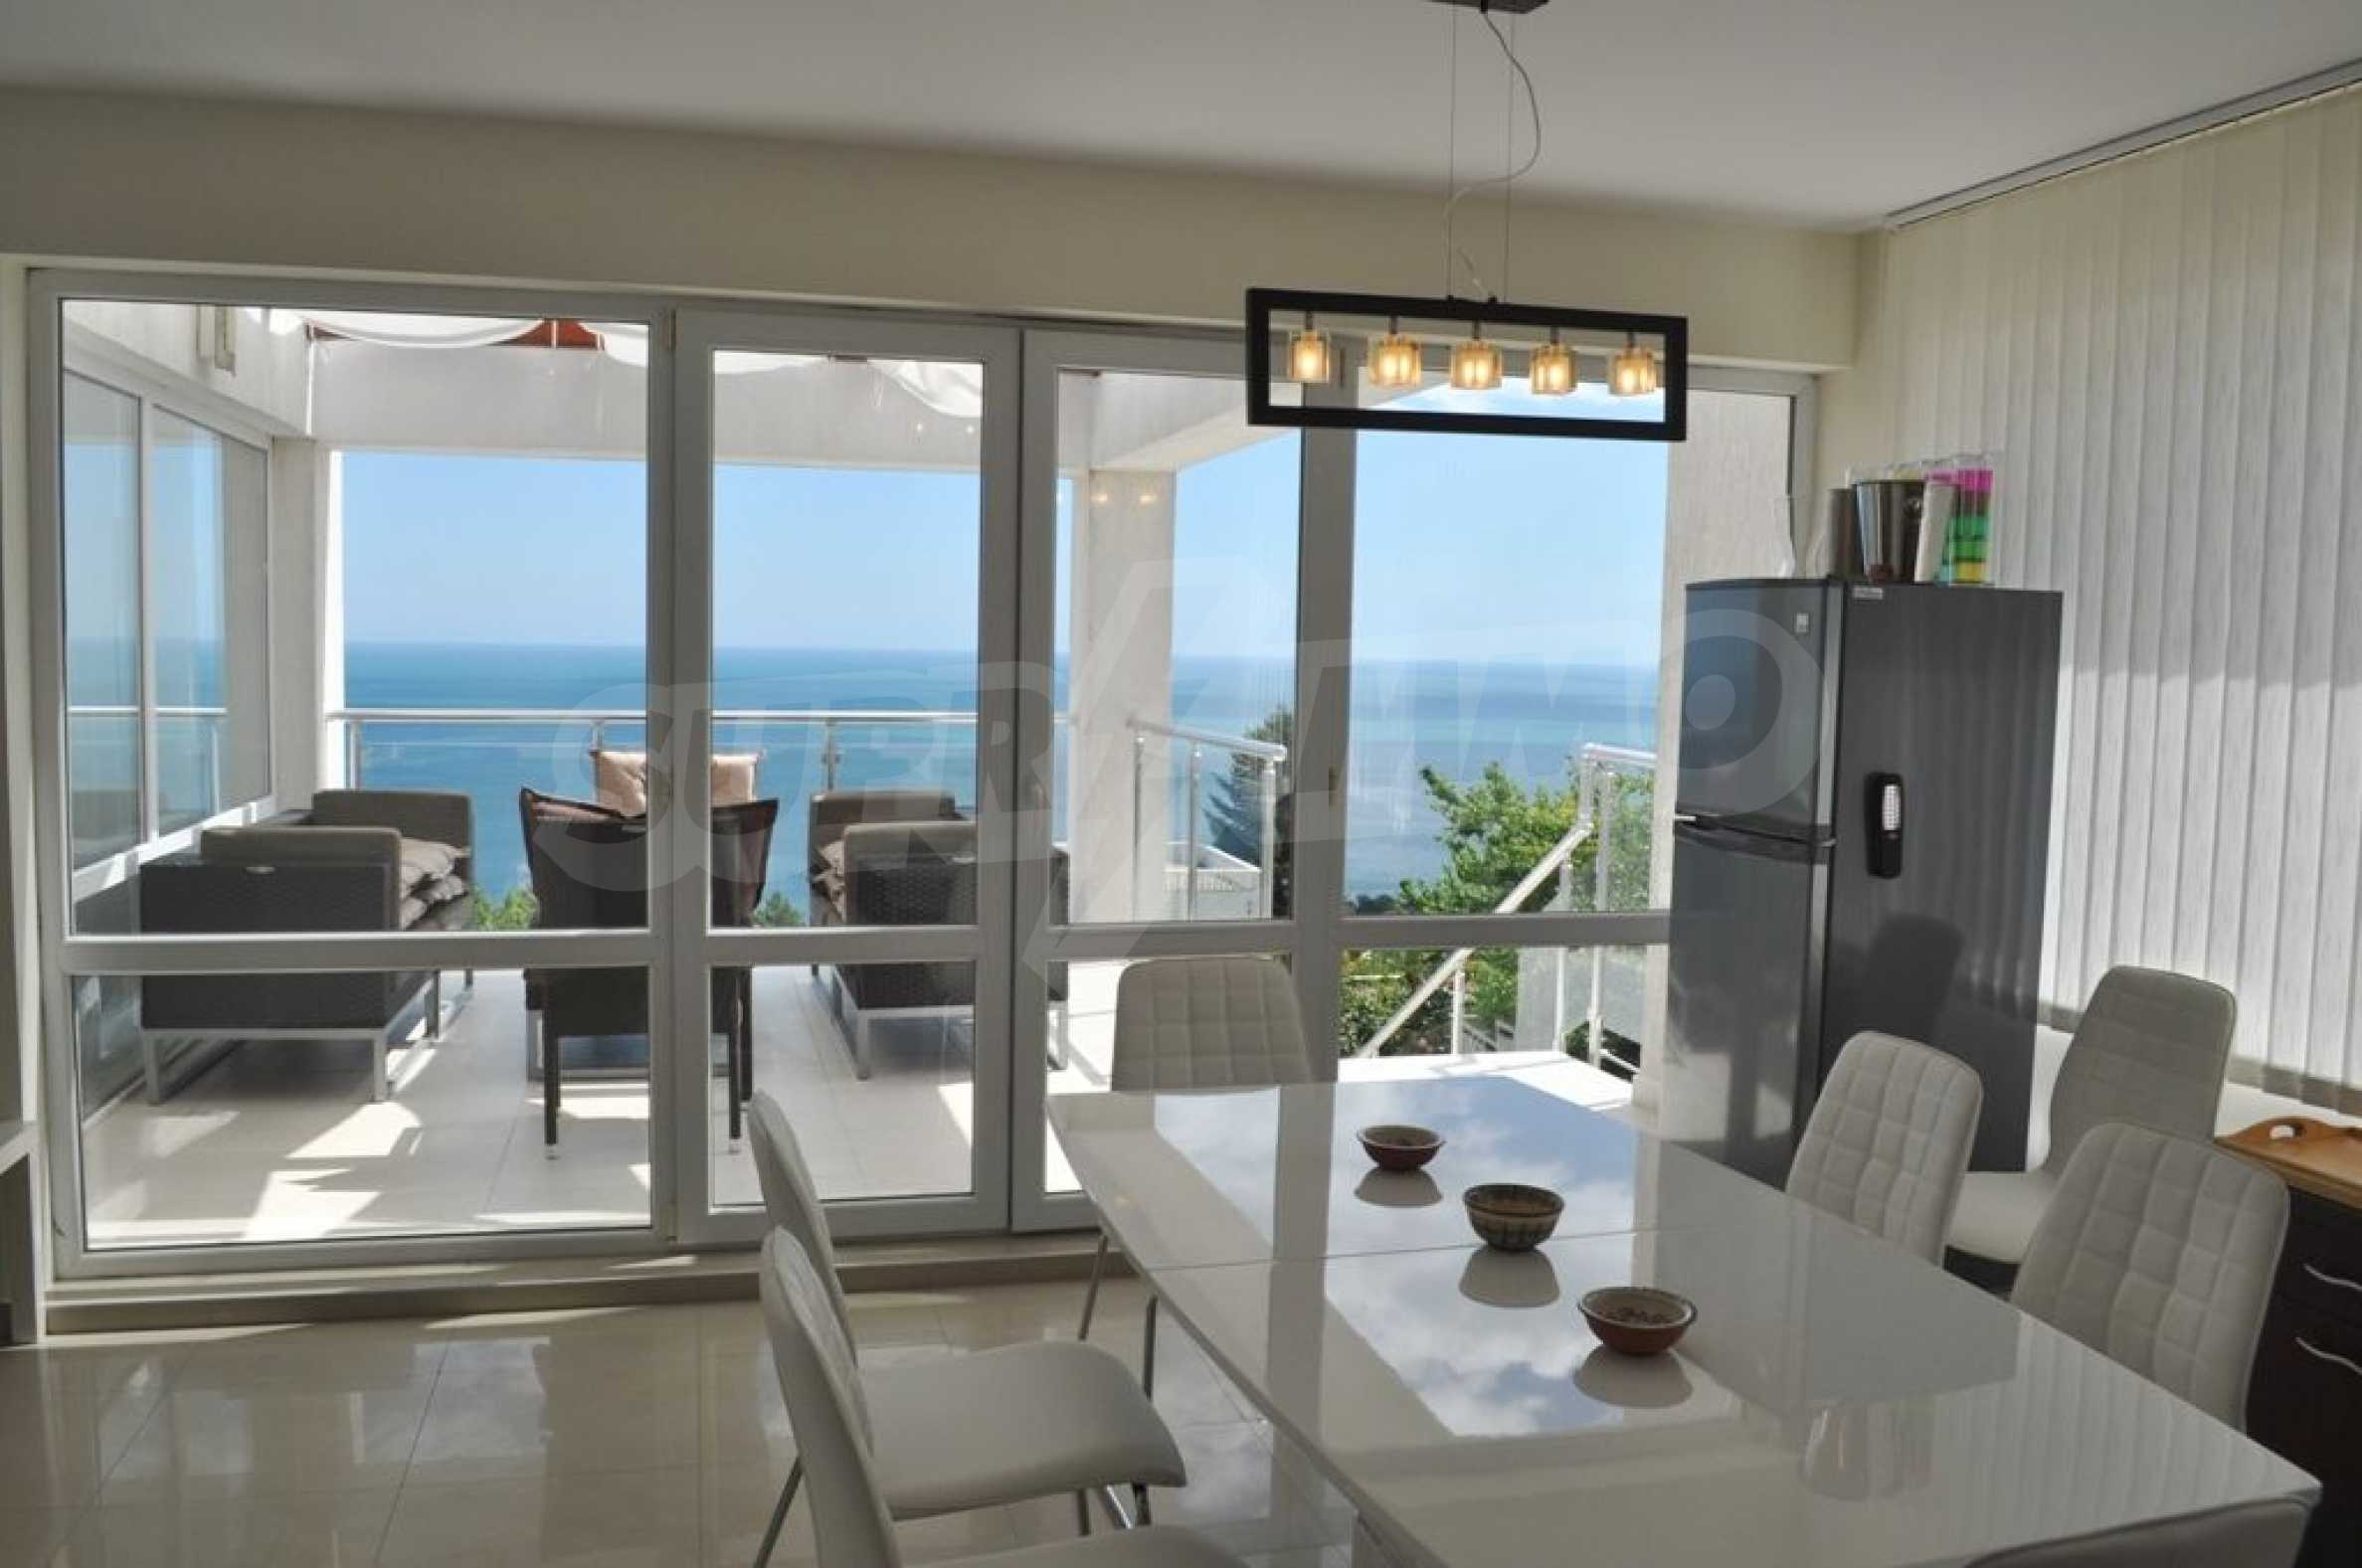 Luxury villa with 4 bedrooms for rent in Albena area  5